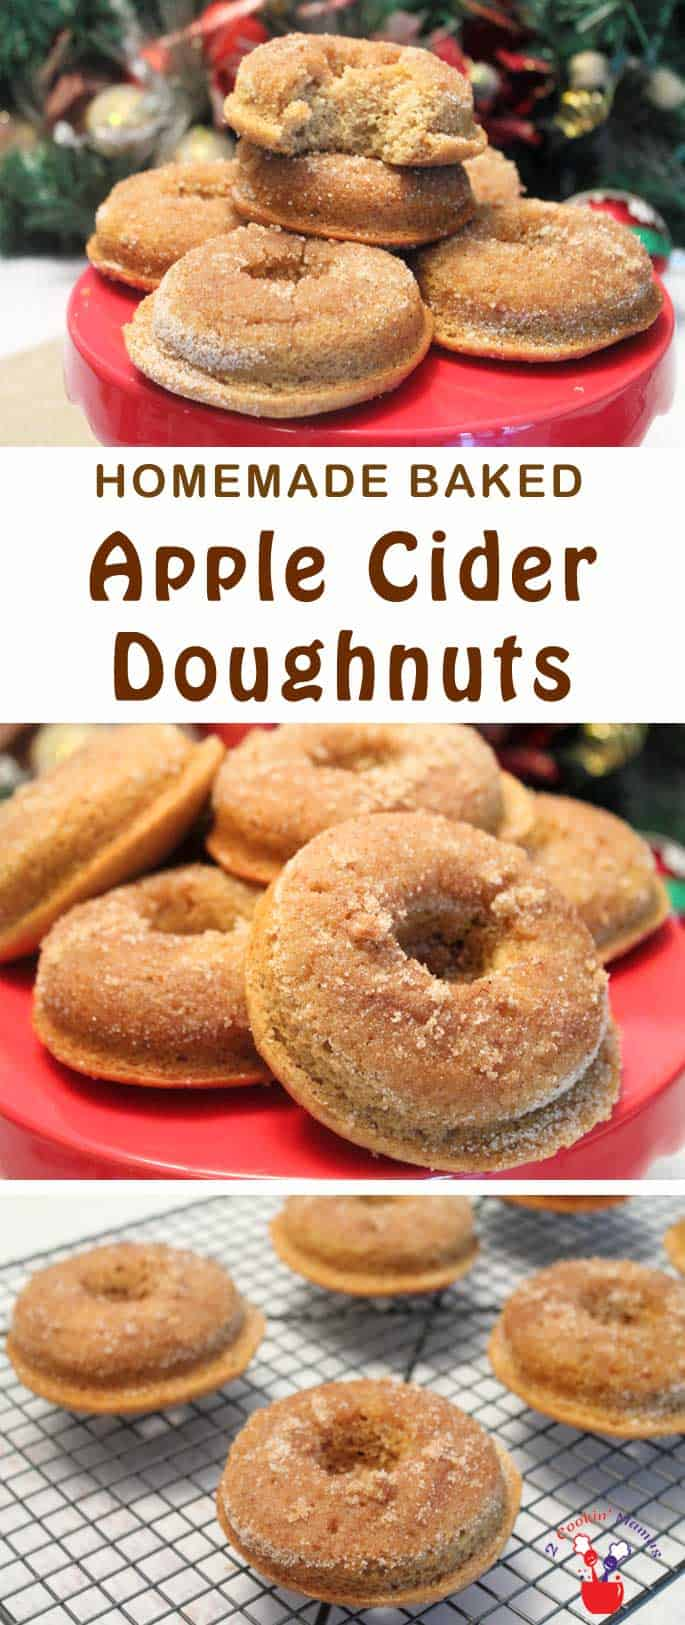 Baked Apple Cider Doughnuts - 2 Cookin' Mamas